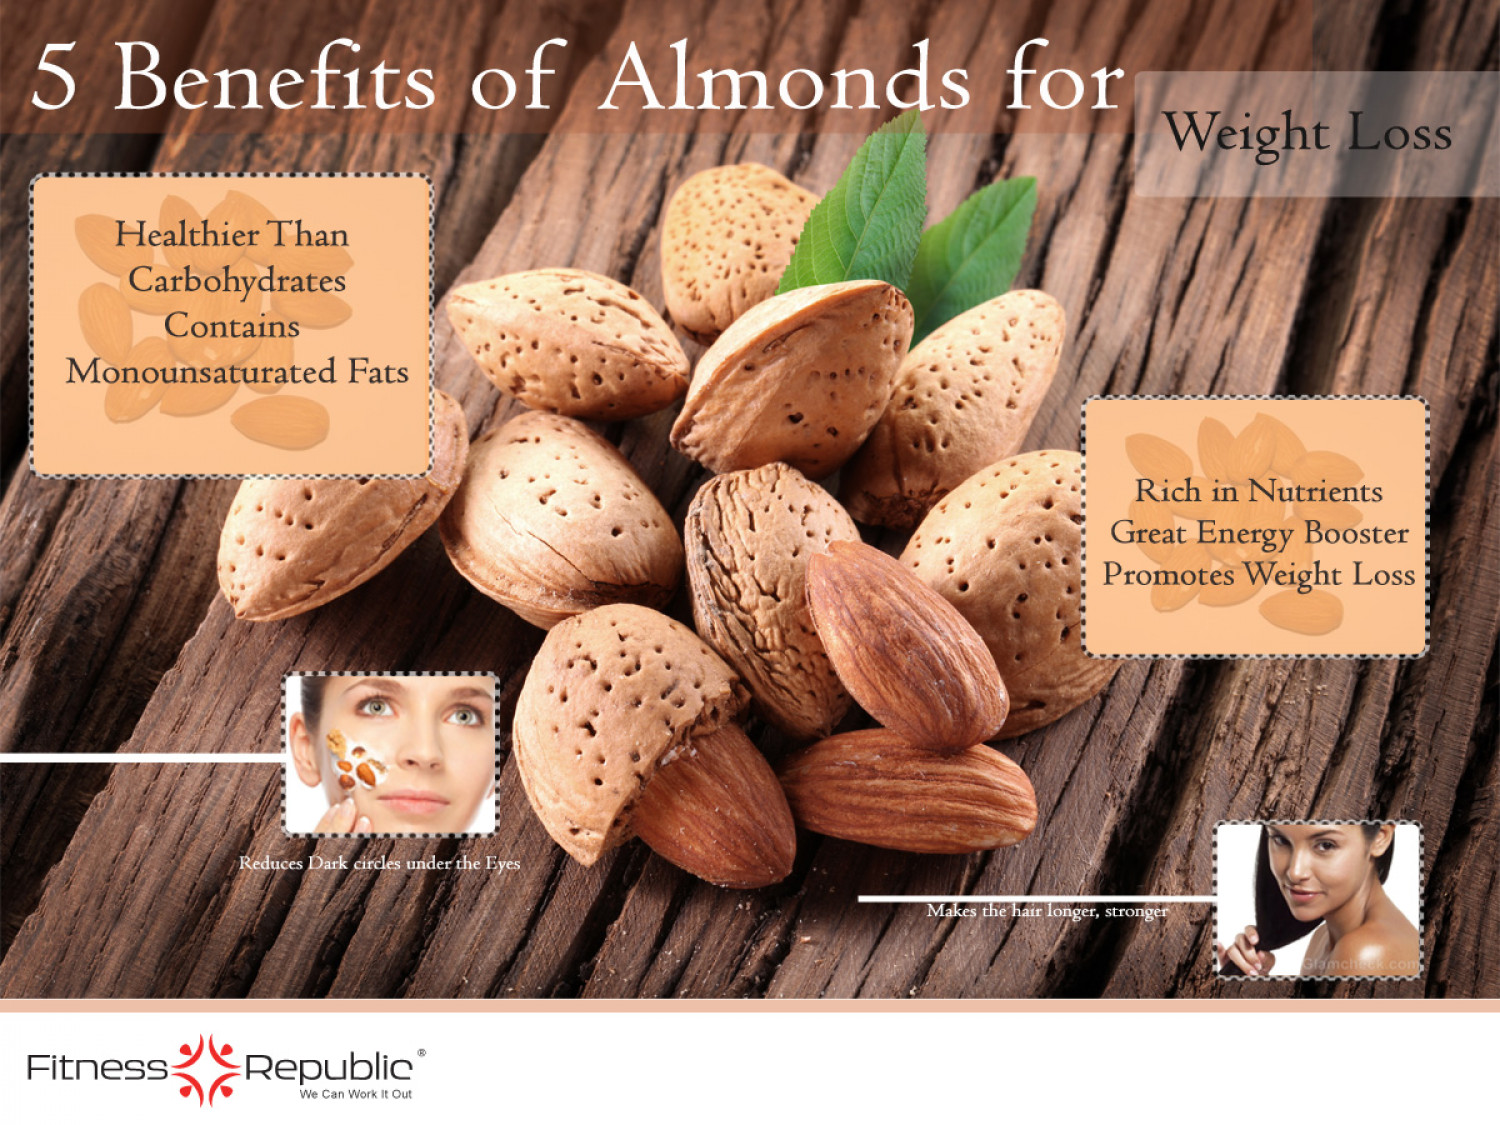 5 Benefits Of Almond For Weight Loss Infographic